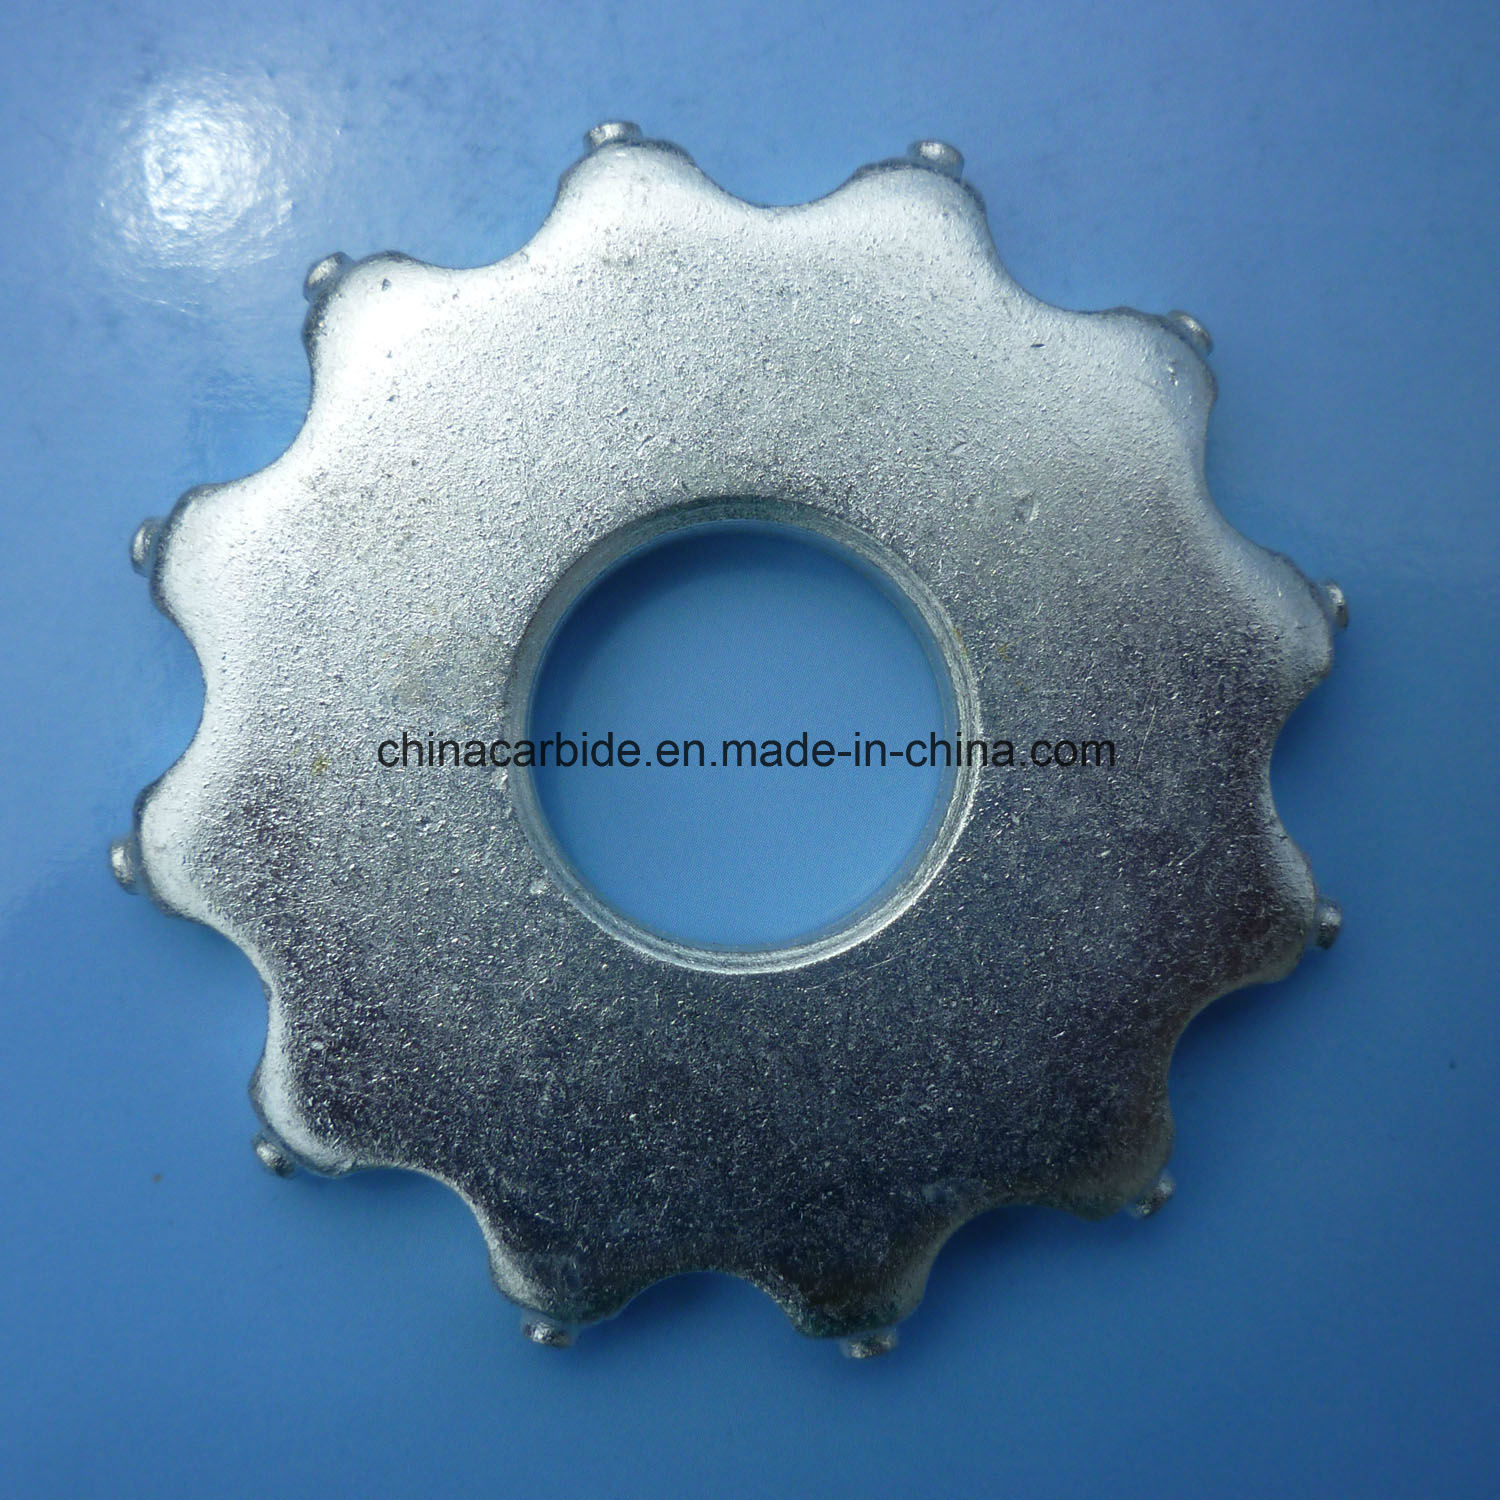 Tungsten Carbide Cutters for Concrete Scarifier